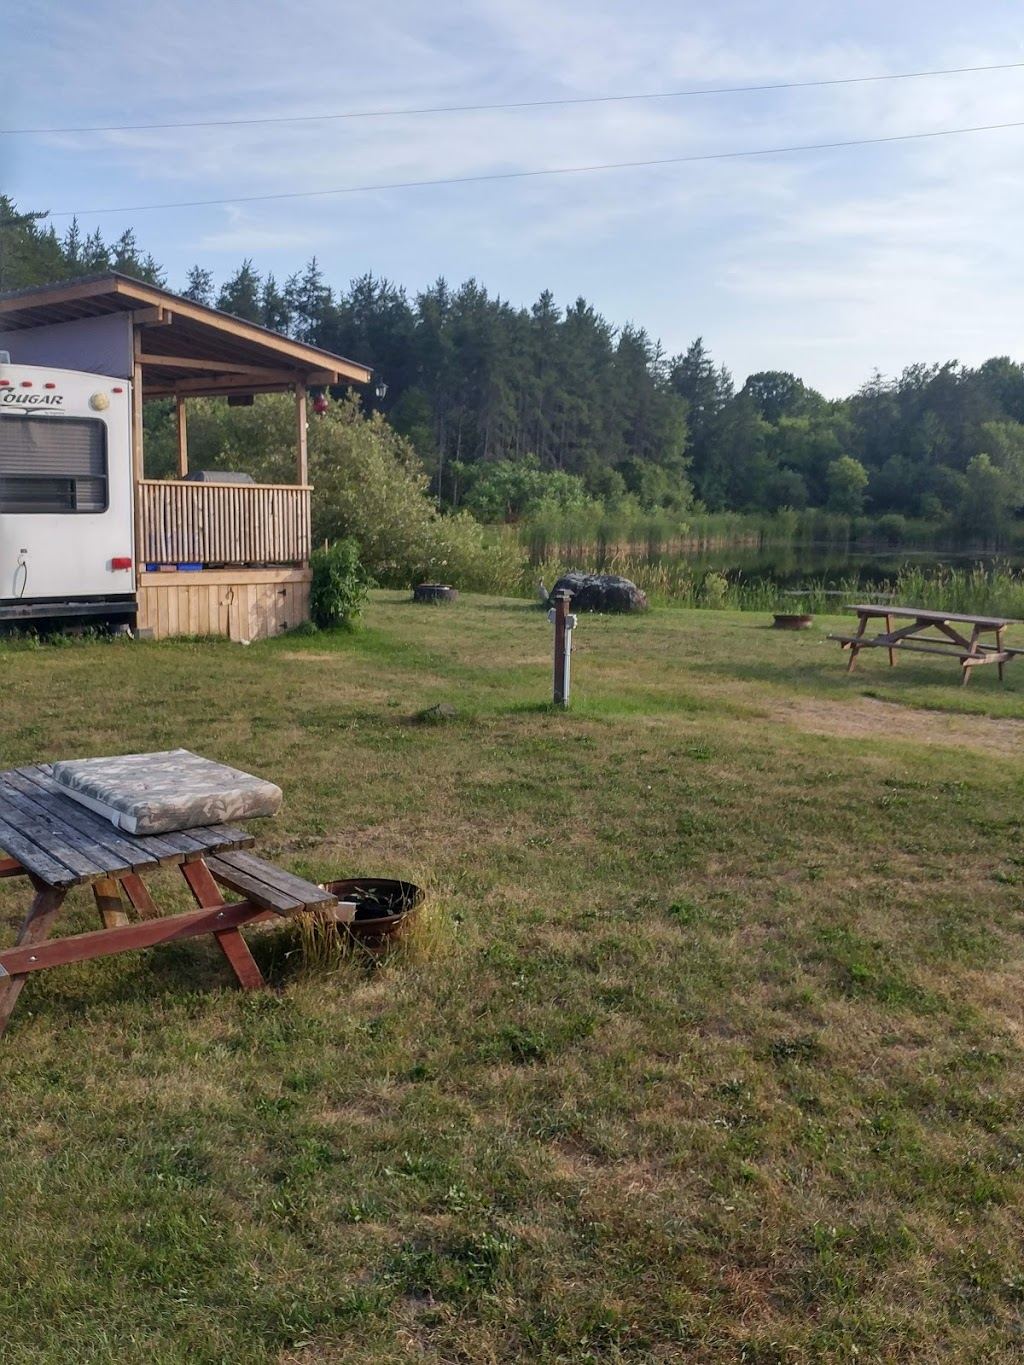 Quality R V Campground   campground   105336 Trans-Canada Hwy, Madoc, ON K0K 2K0, Canada   6134732323 OR +1 613-473-2323